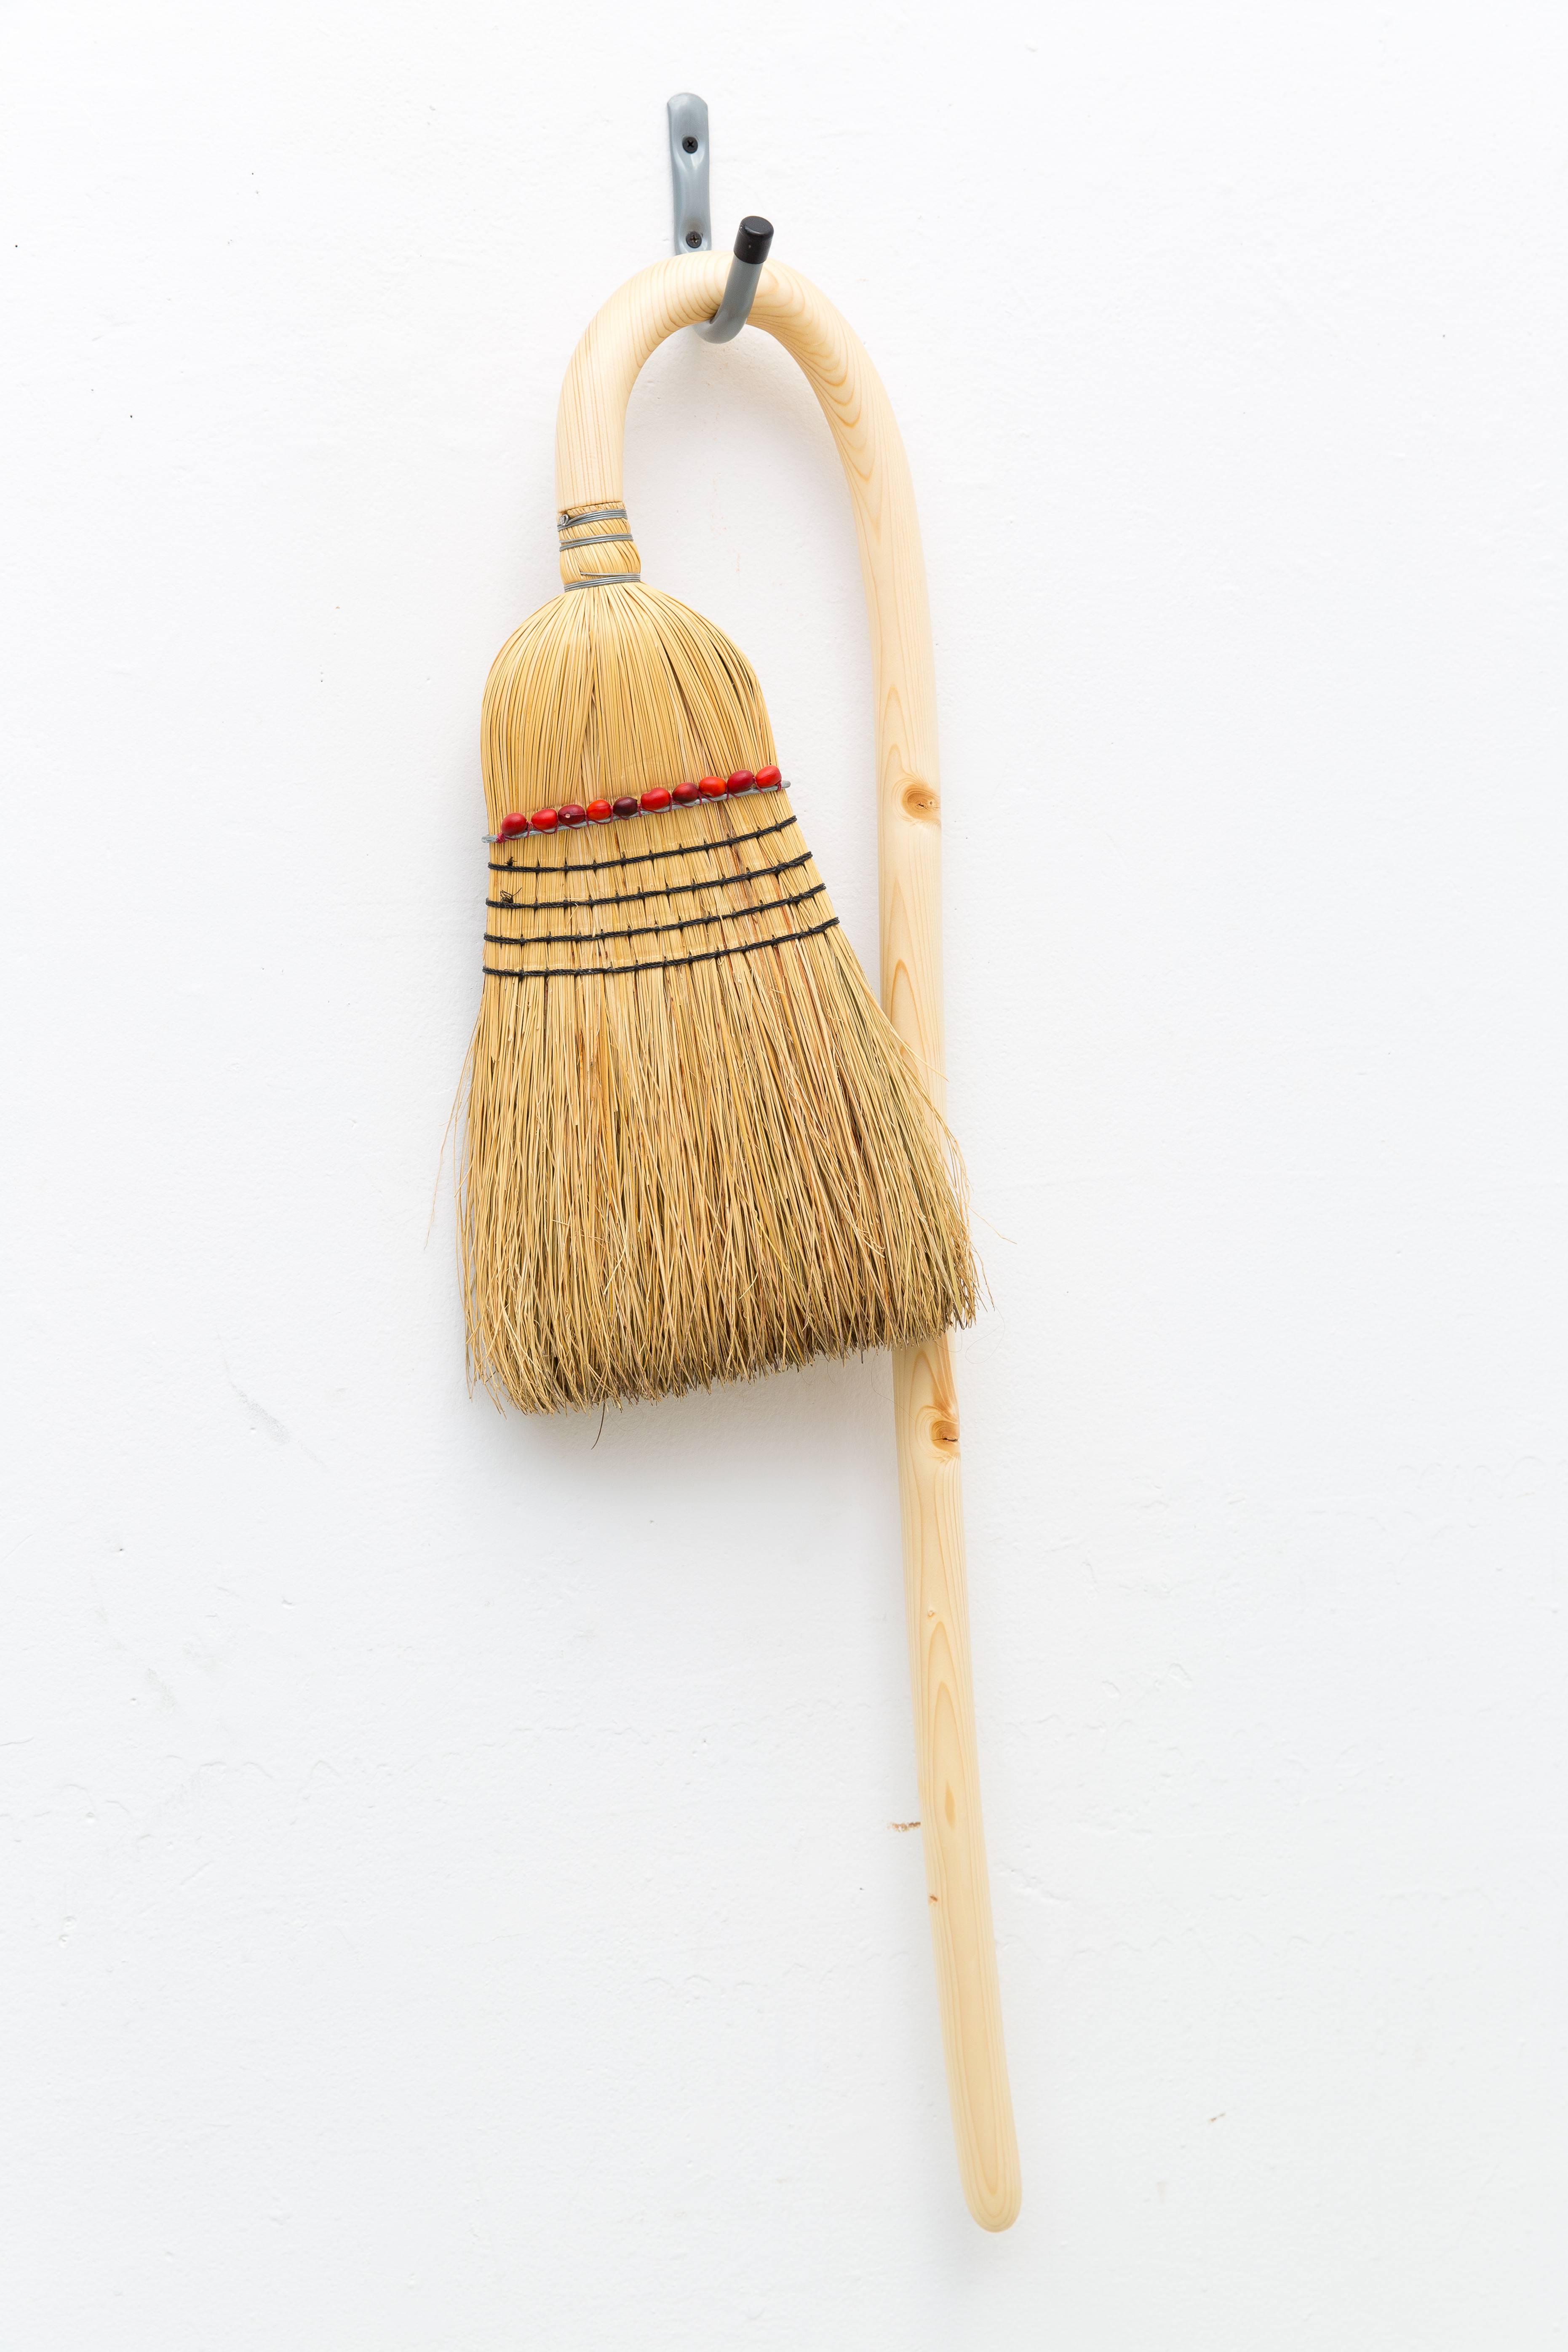 Raul De Lara, Tired Broom (Texas), 2020